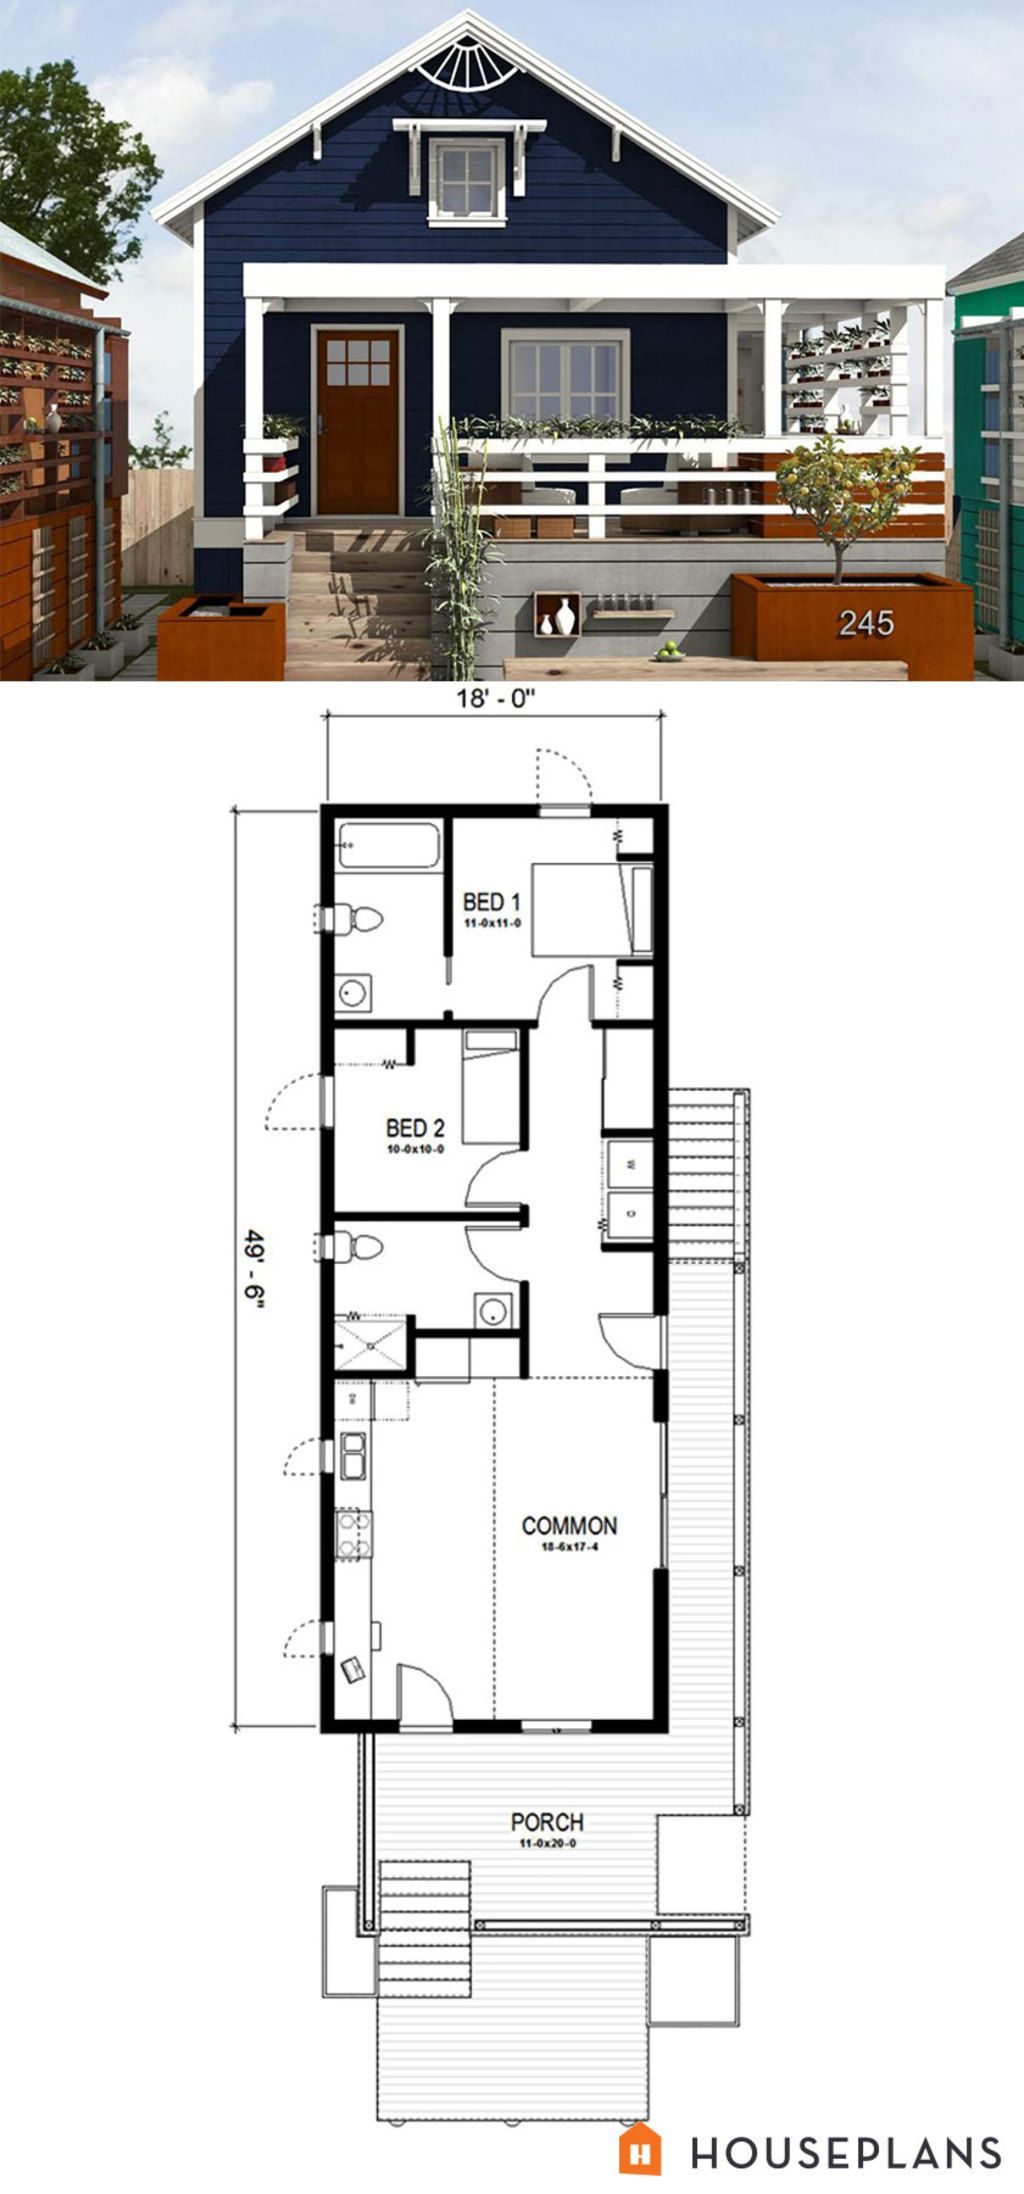 New Orleans cottage house plan by FreeGreen | Small Houses ...